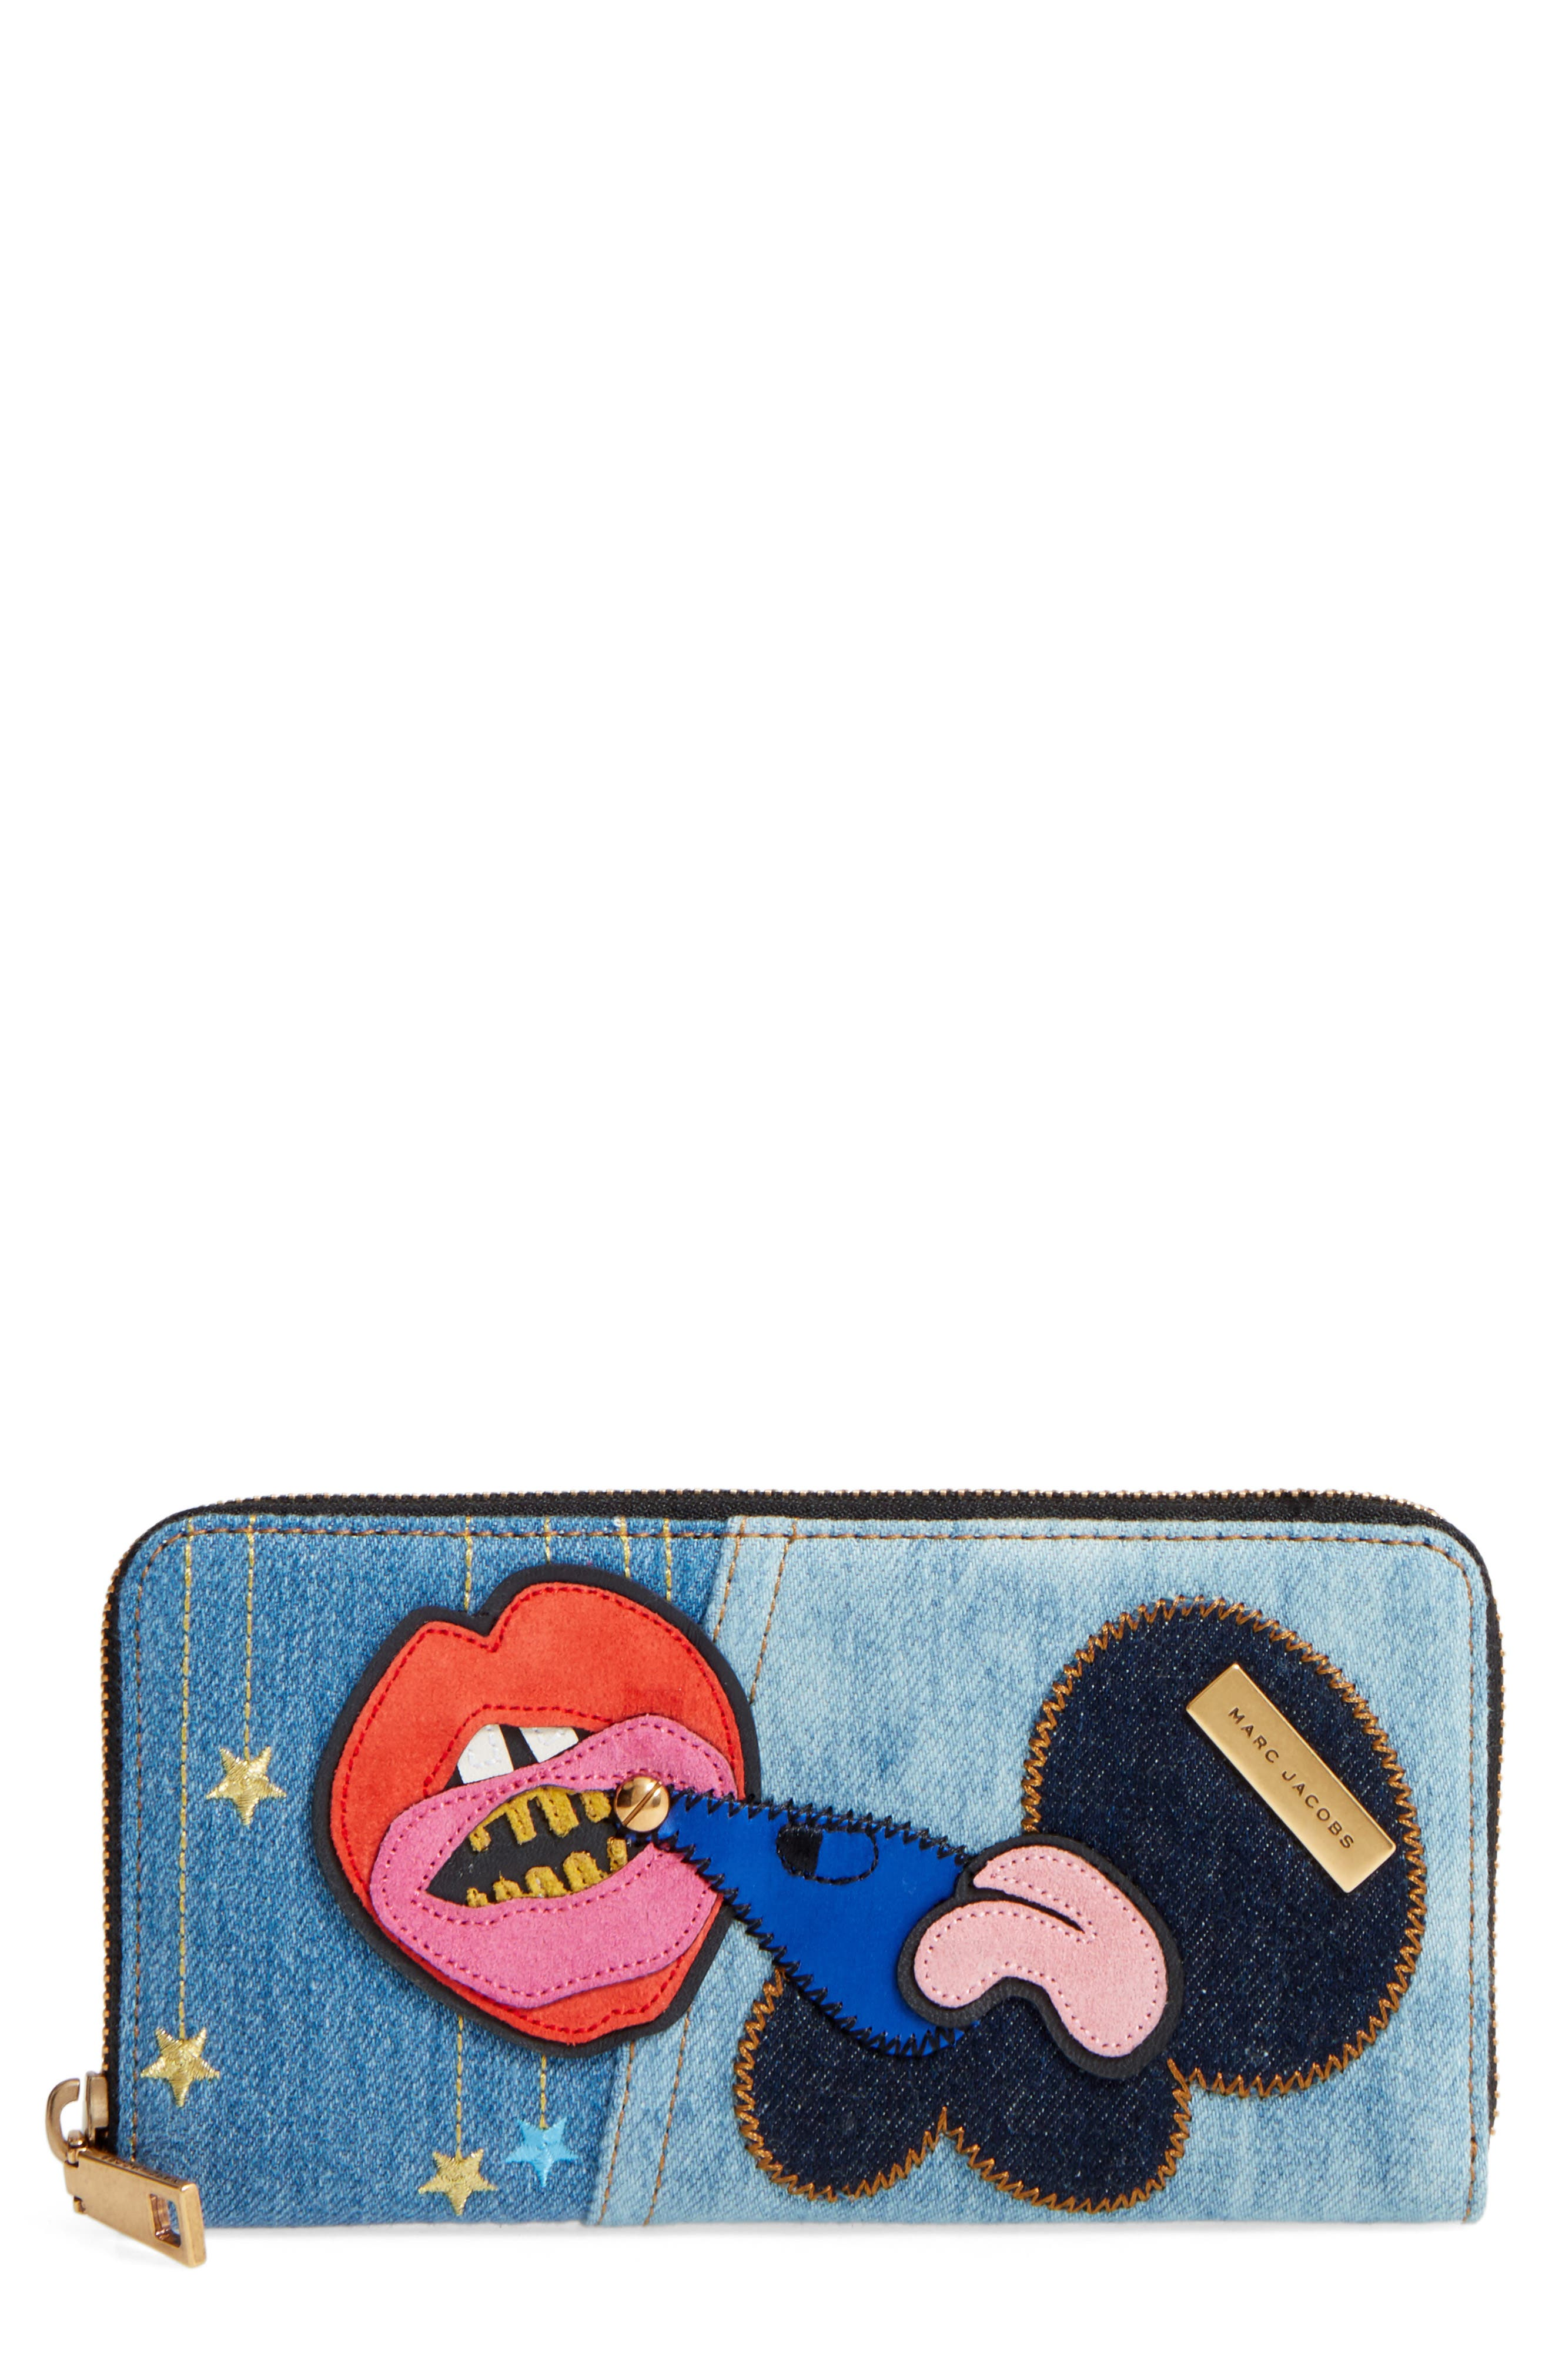 MARC JACOBS Denim Wallet